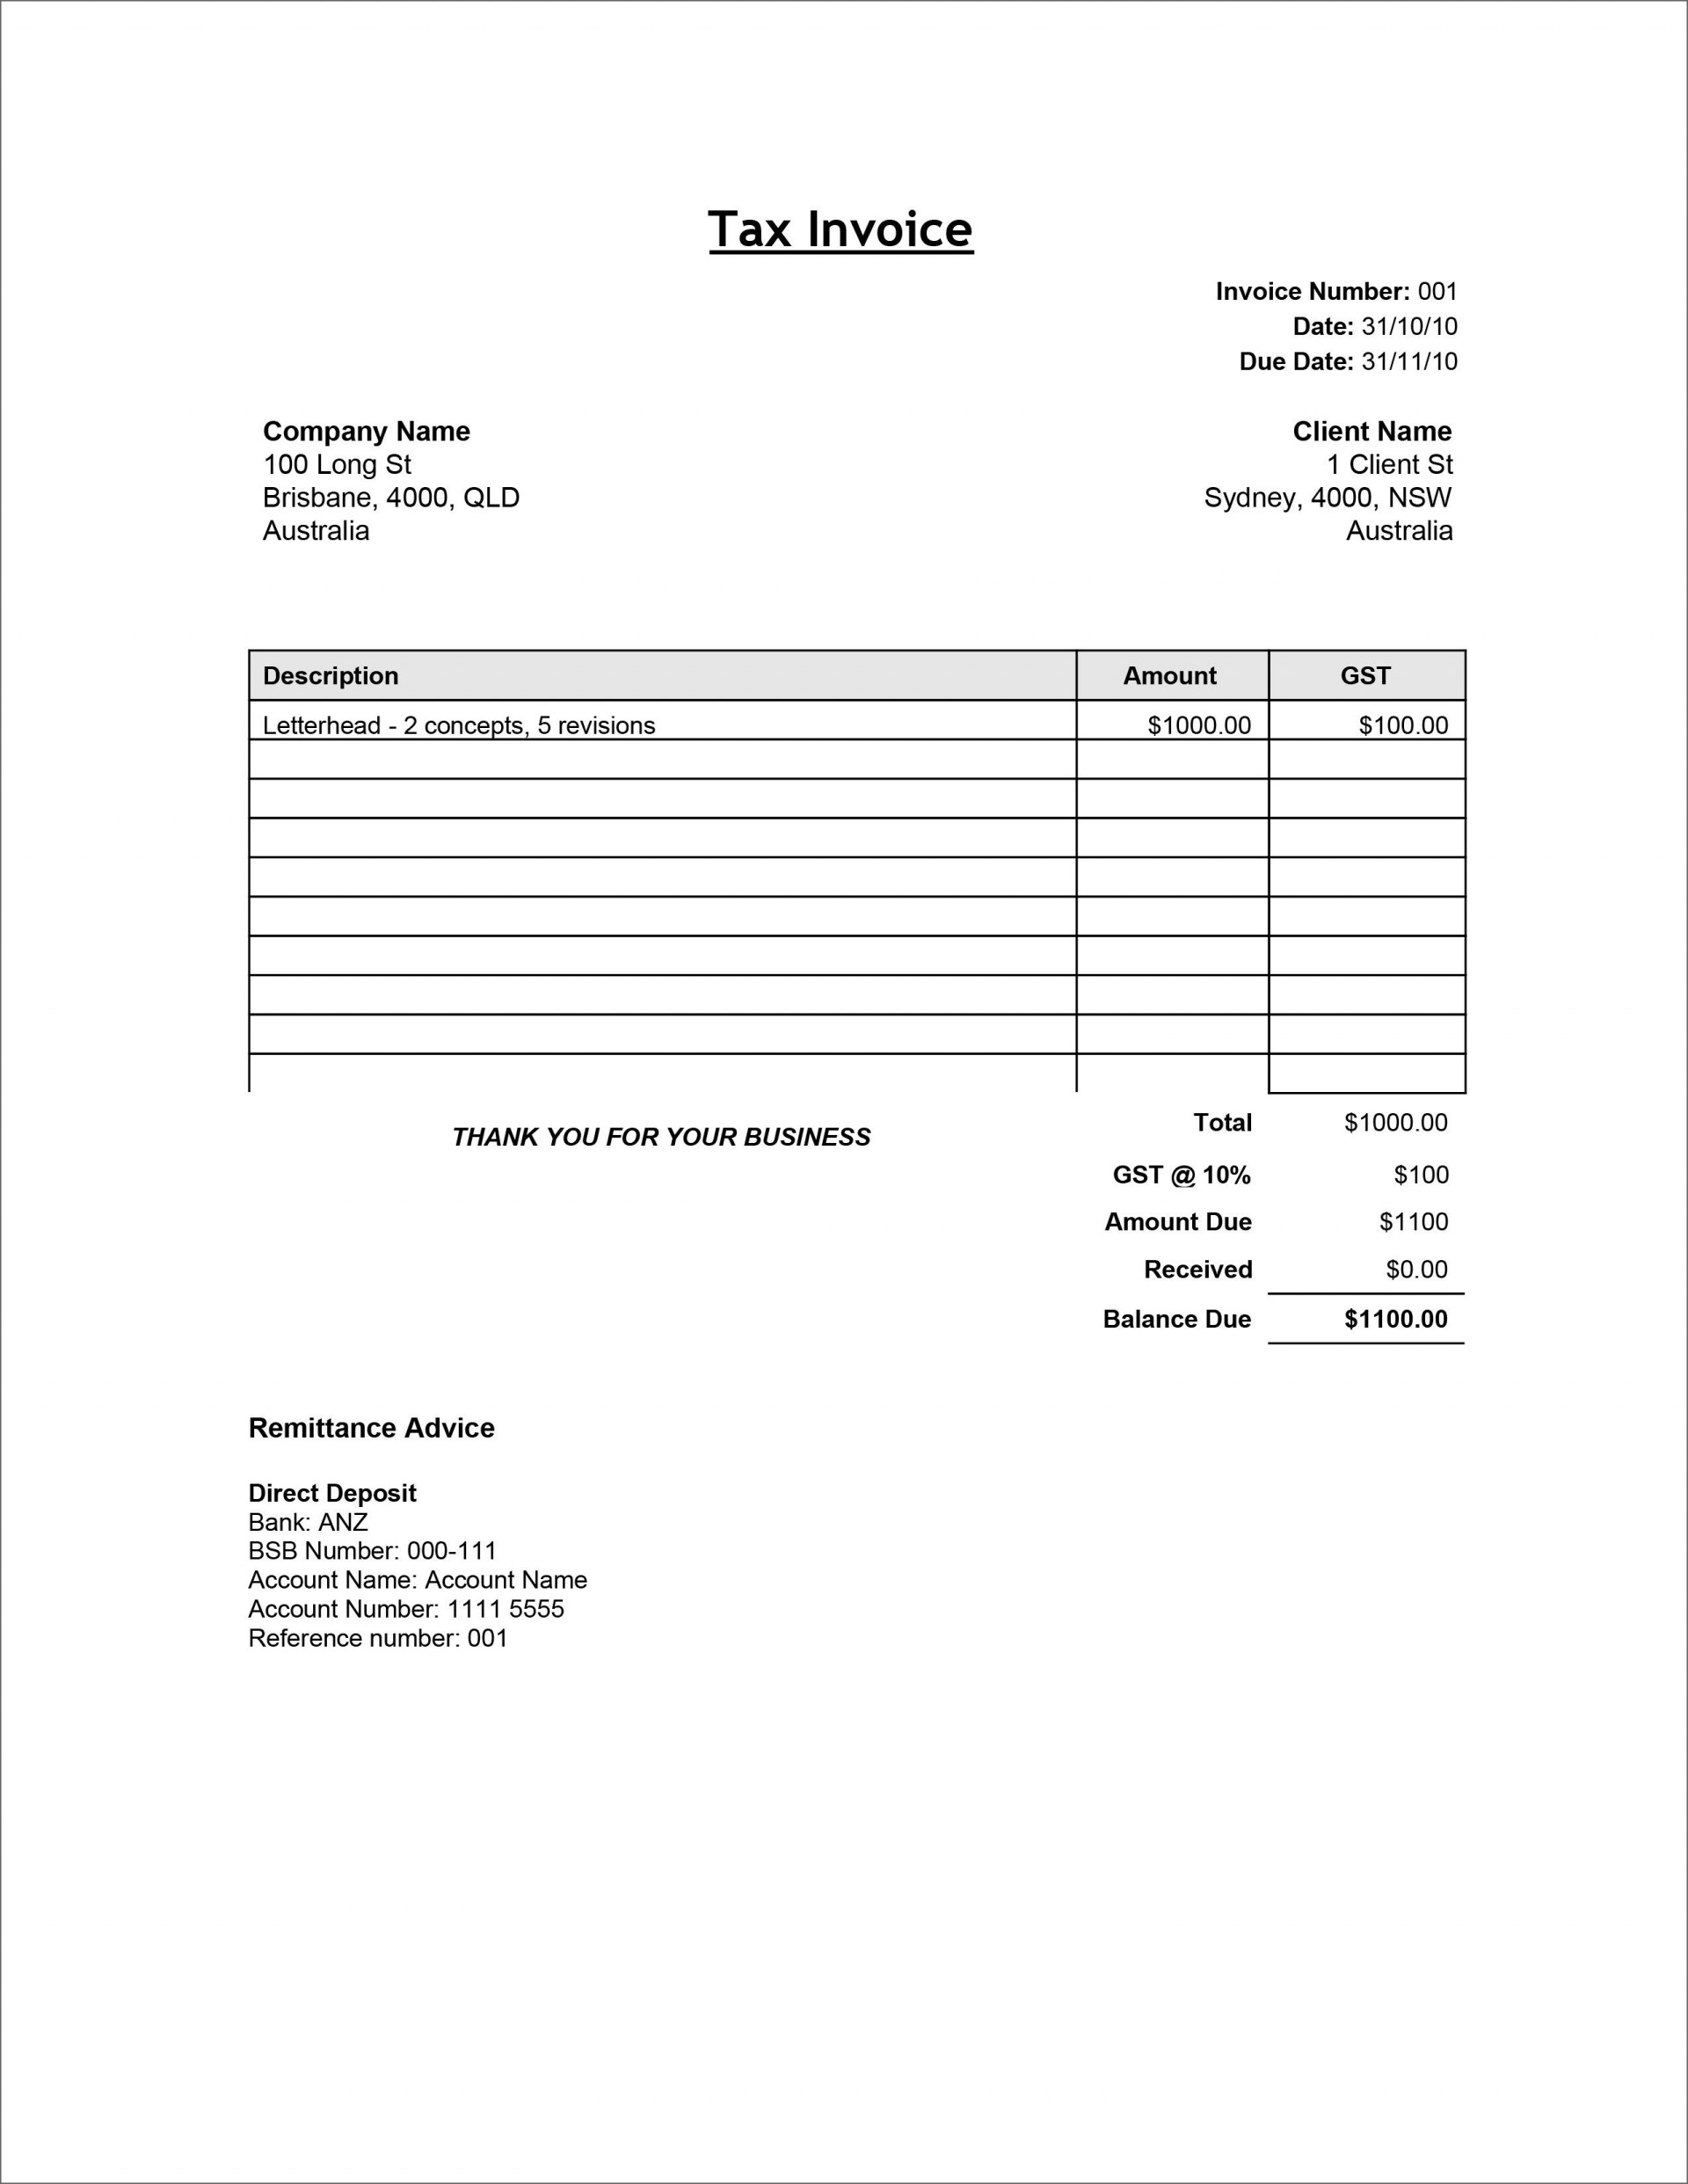 009 Top Free Printable Tax Invoice Template Australia High Definition 1920